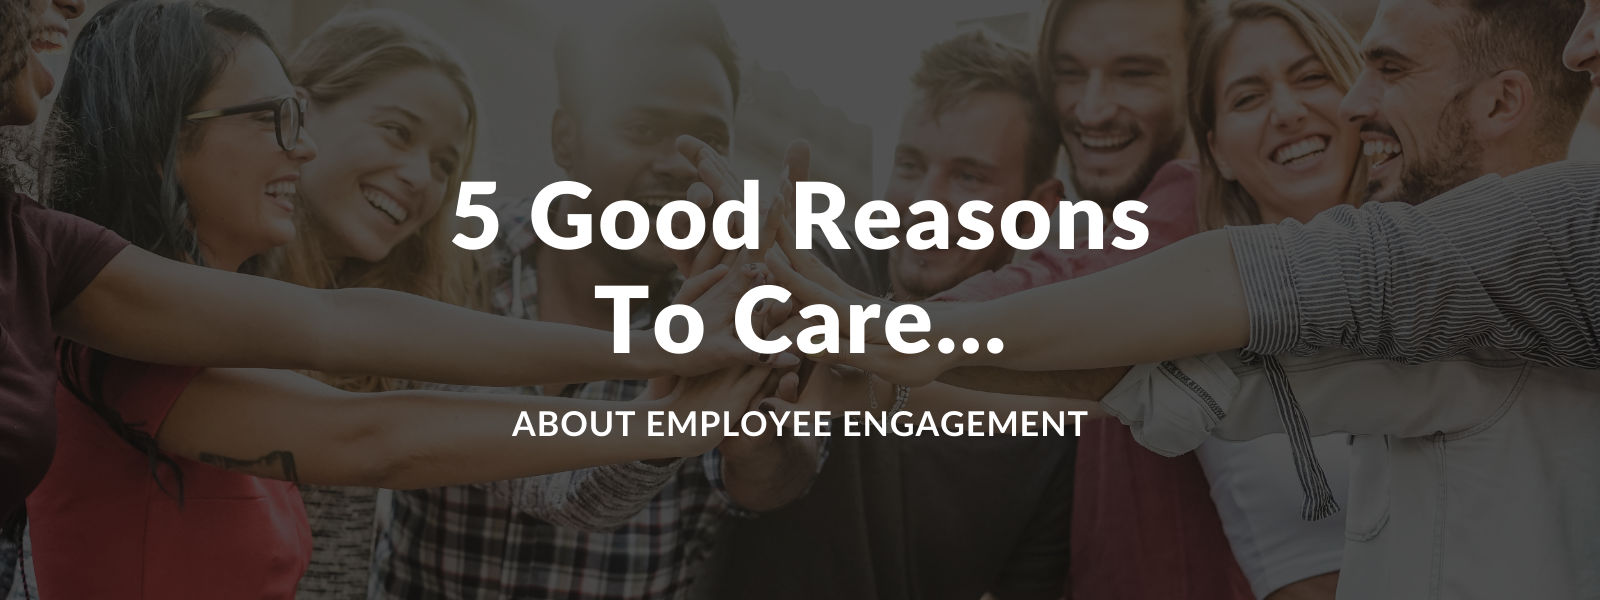 Reasons To Care About Employee Engagement - Talaera Business English